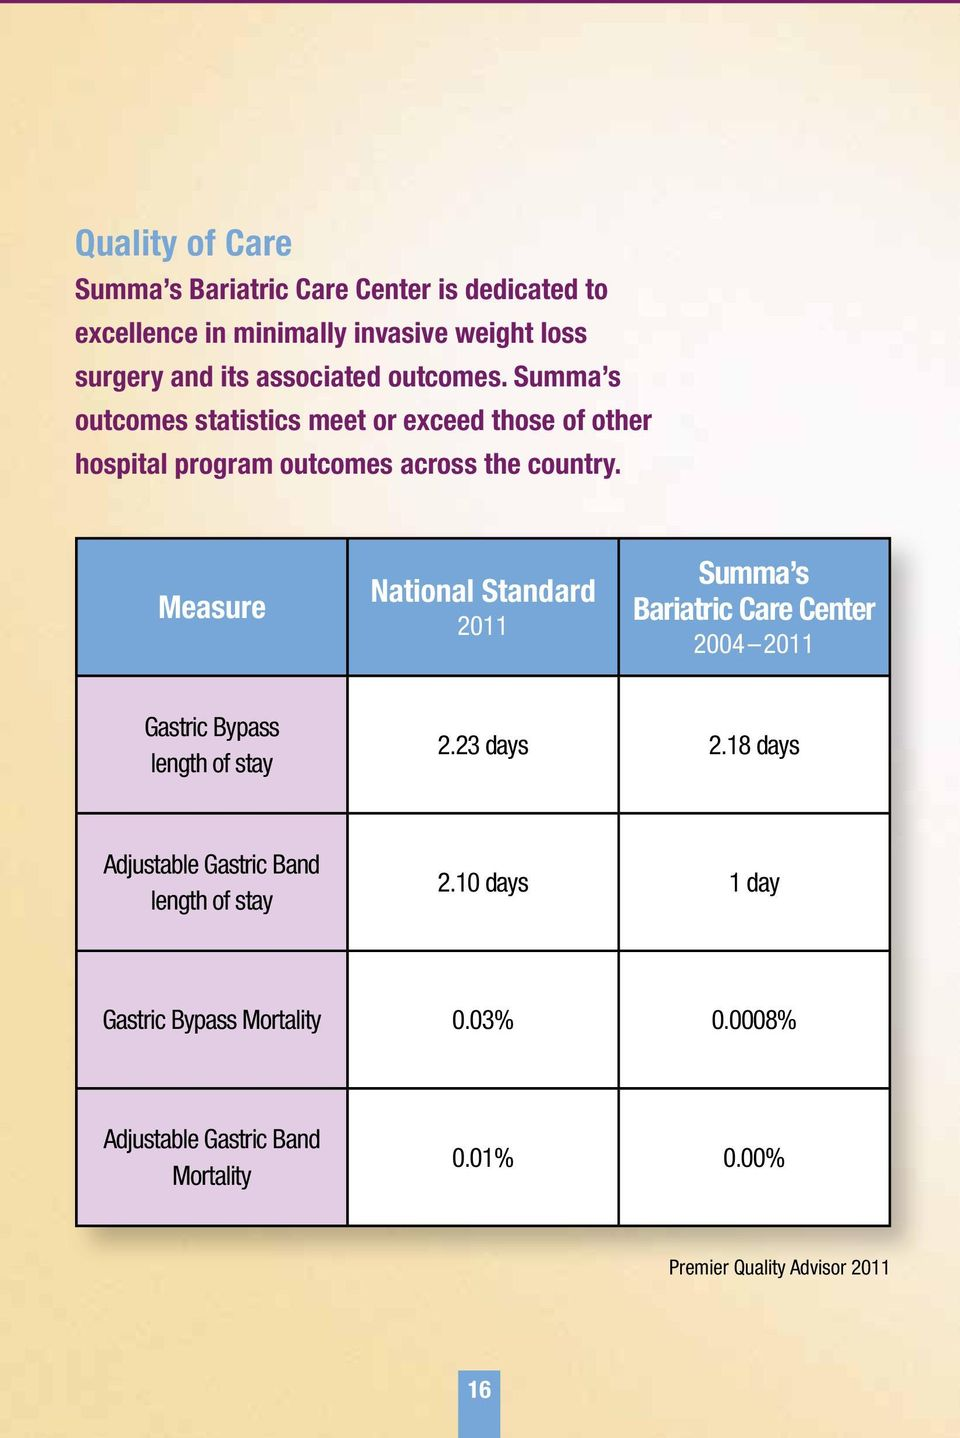 Measure National Standard 2011 Summa s Bariatric Care Center 2004 2011 Gastric Bypass length of stay 2.23 days 2.